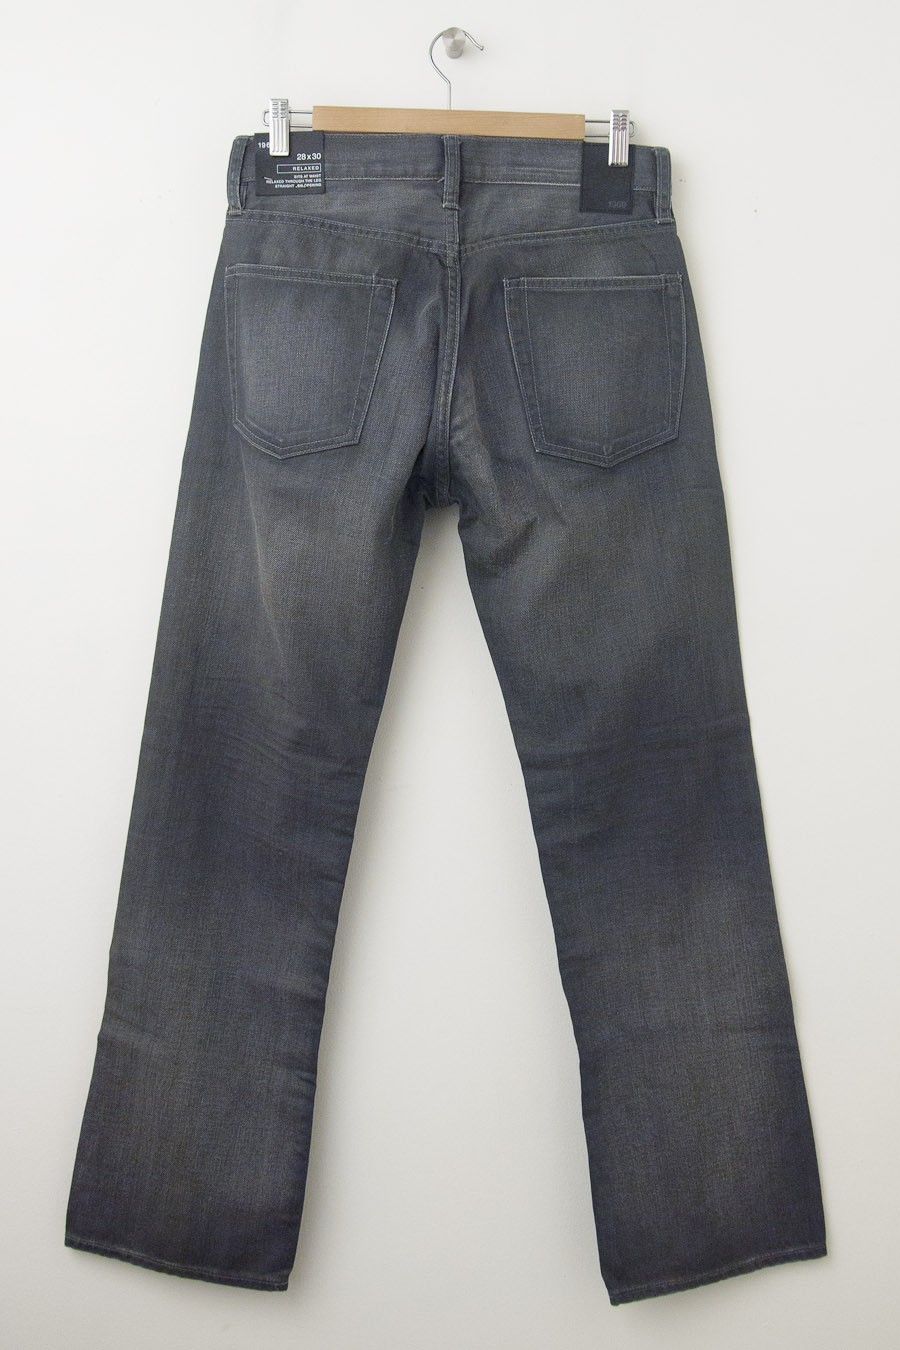 New Gap 1969 Relaxed Fit Jeans In Grey